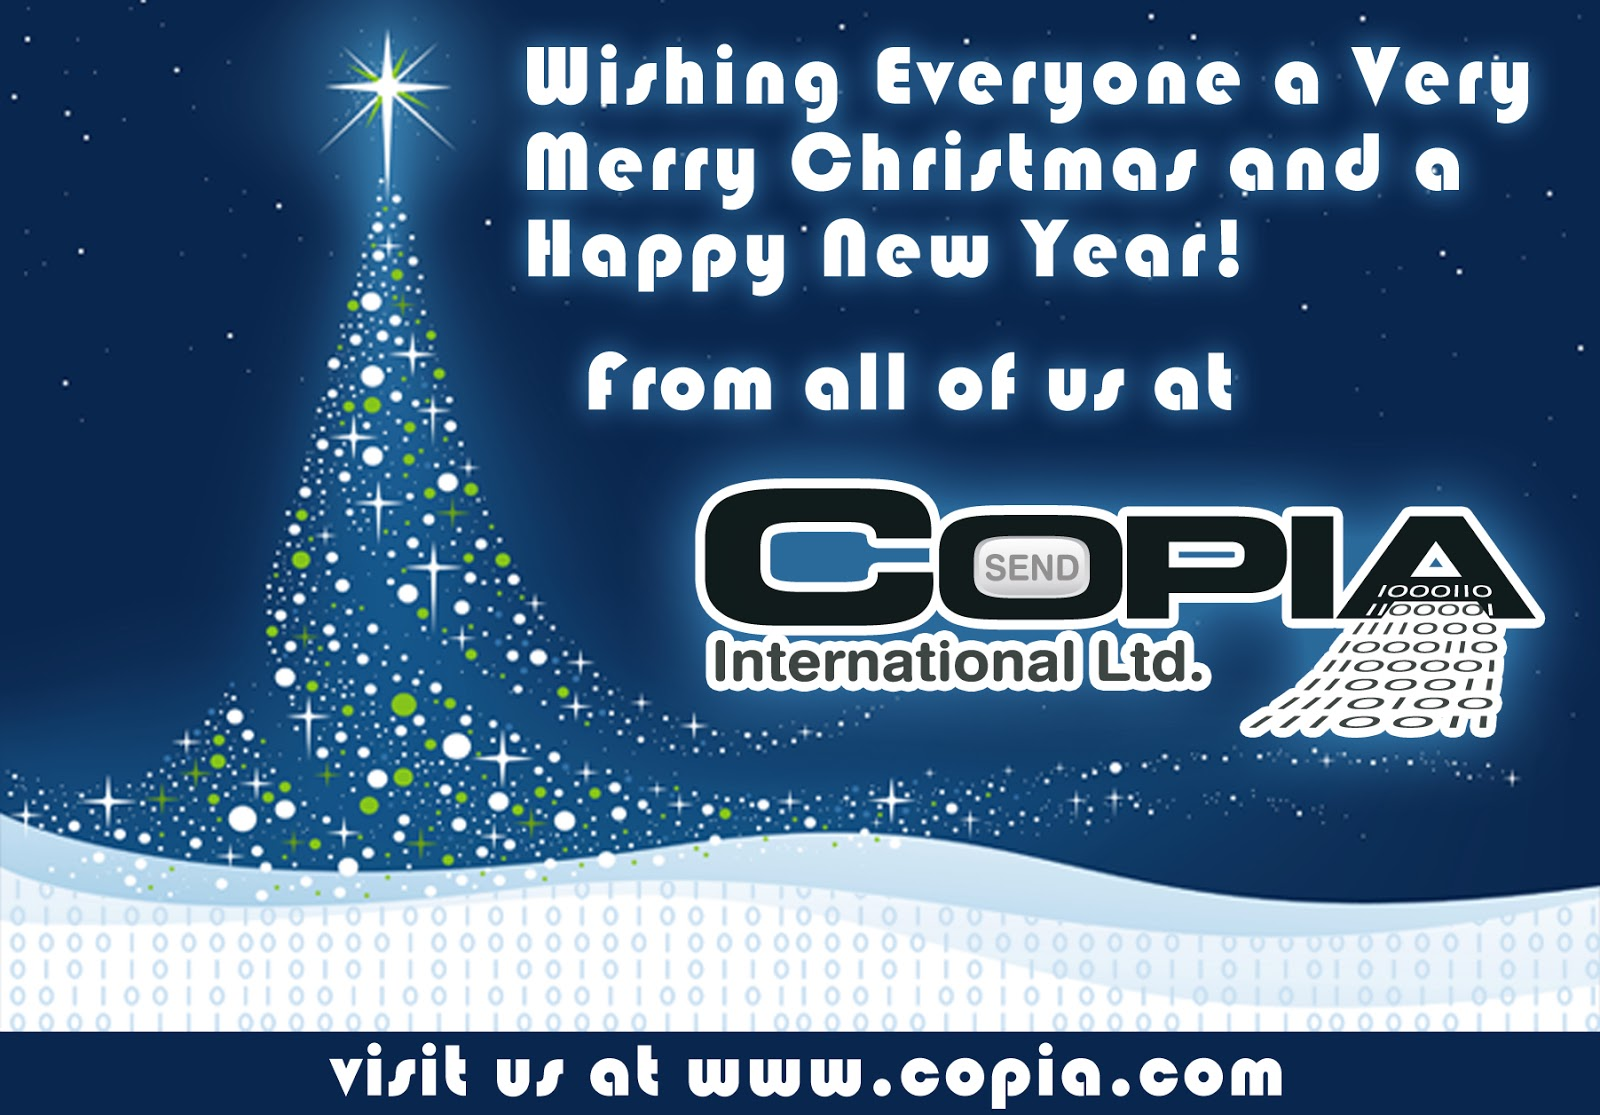 Lately by copia seasons greetings we hope you have a peaceful holiday season copia offices will be closed until monday january 6th but we will try to respond to any urgent support e mail m4hsunfo